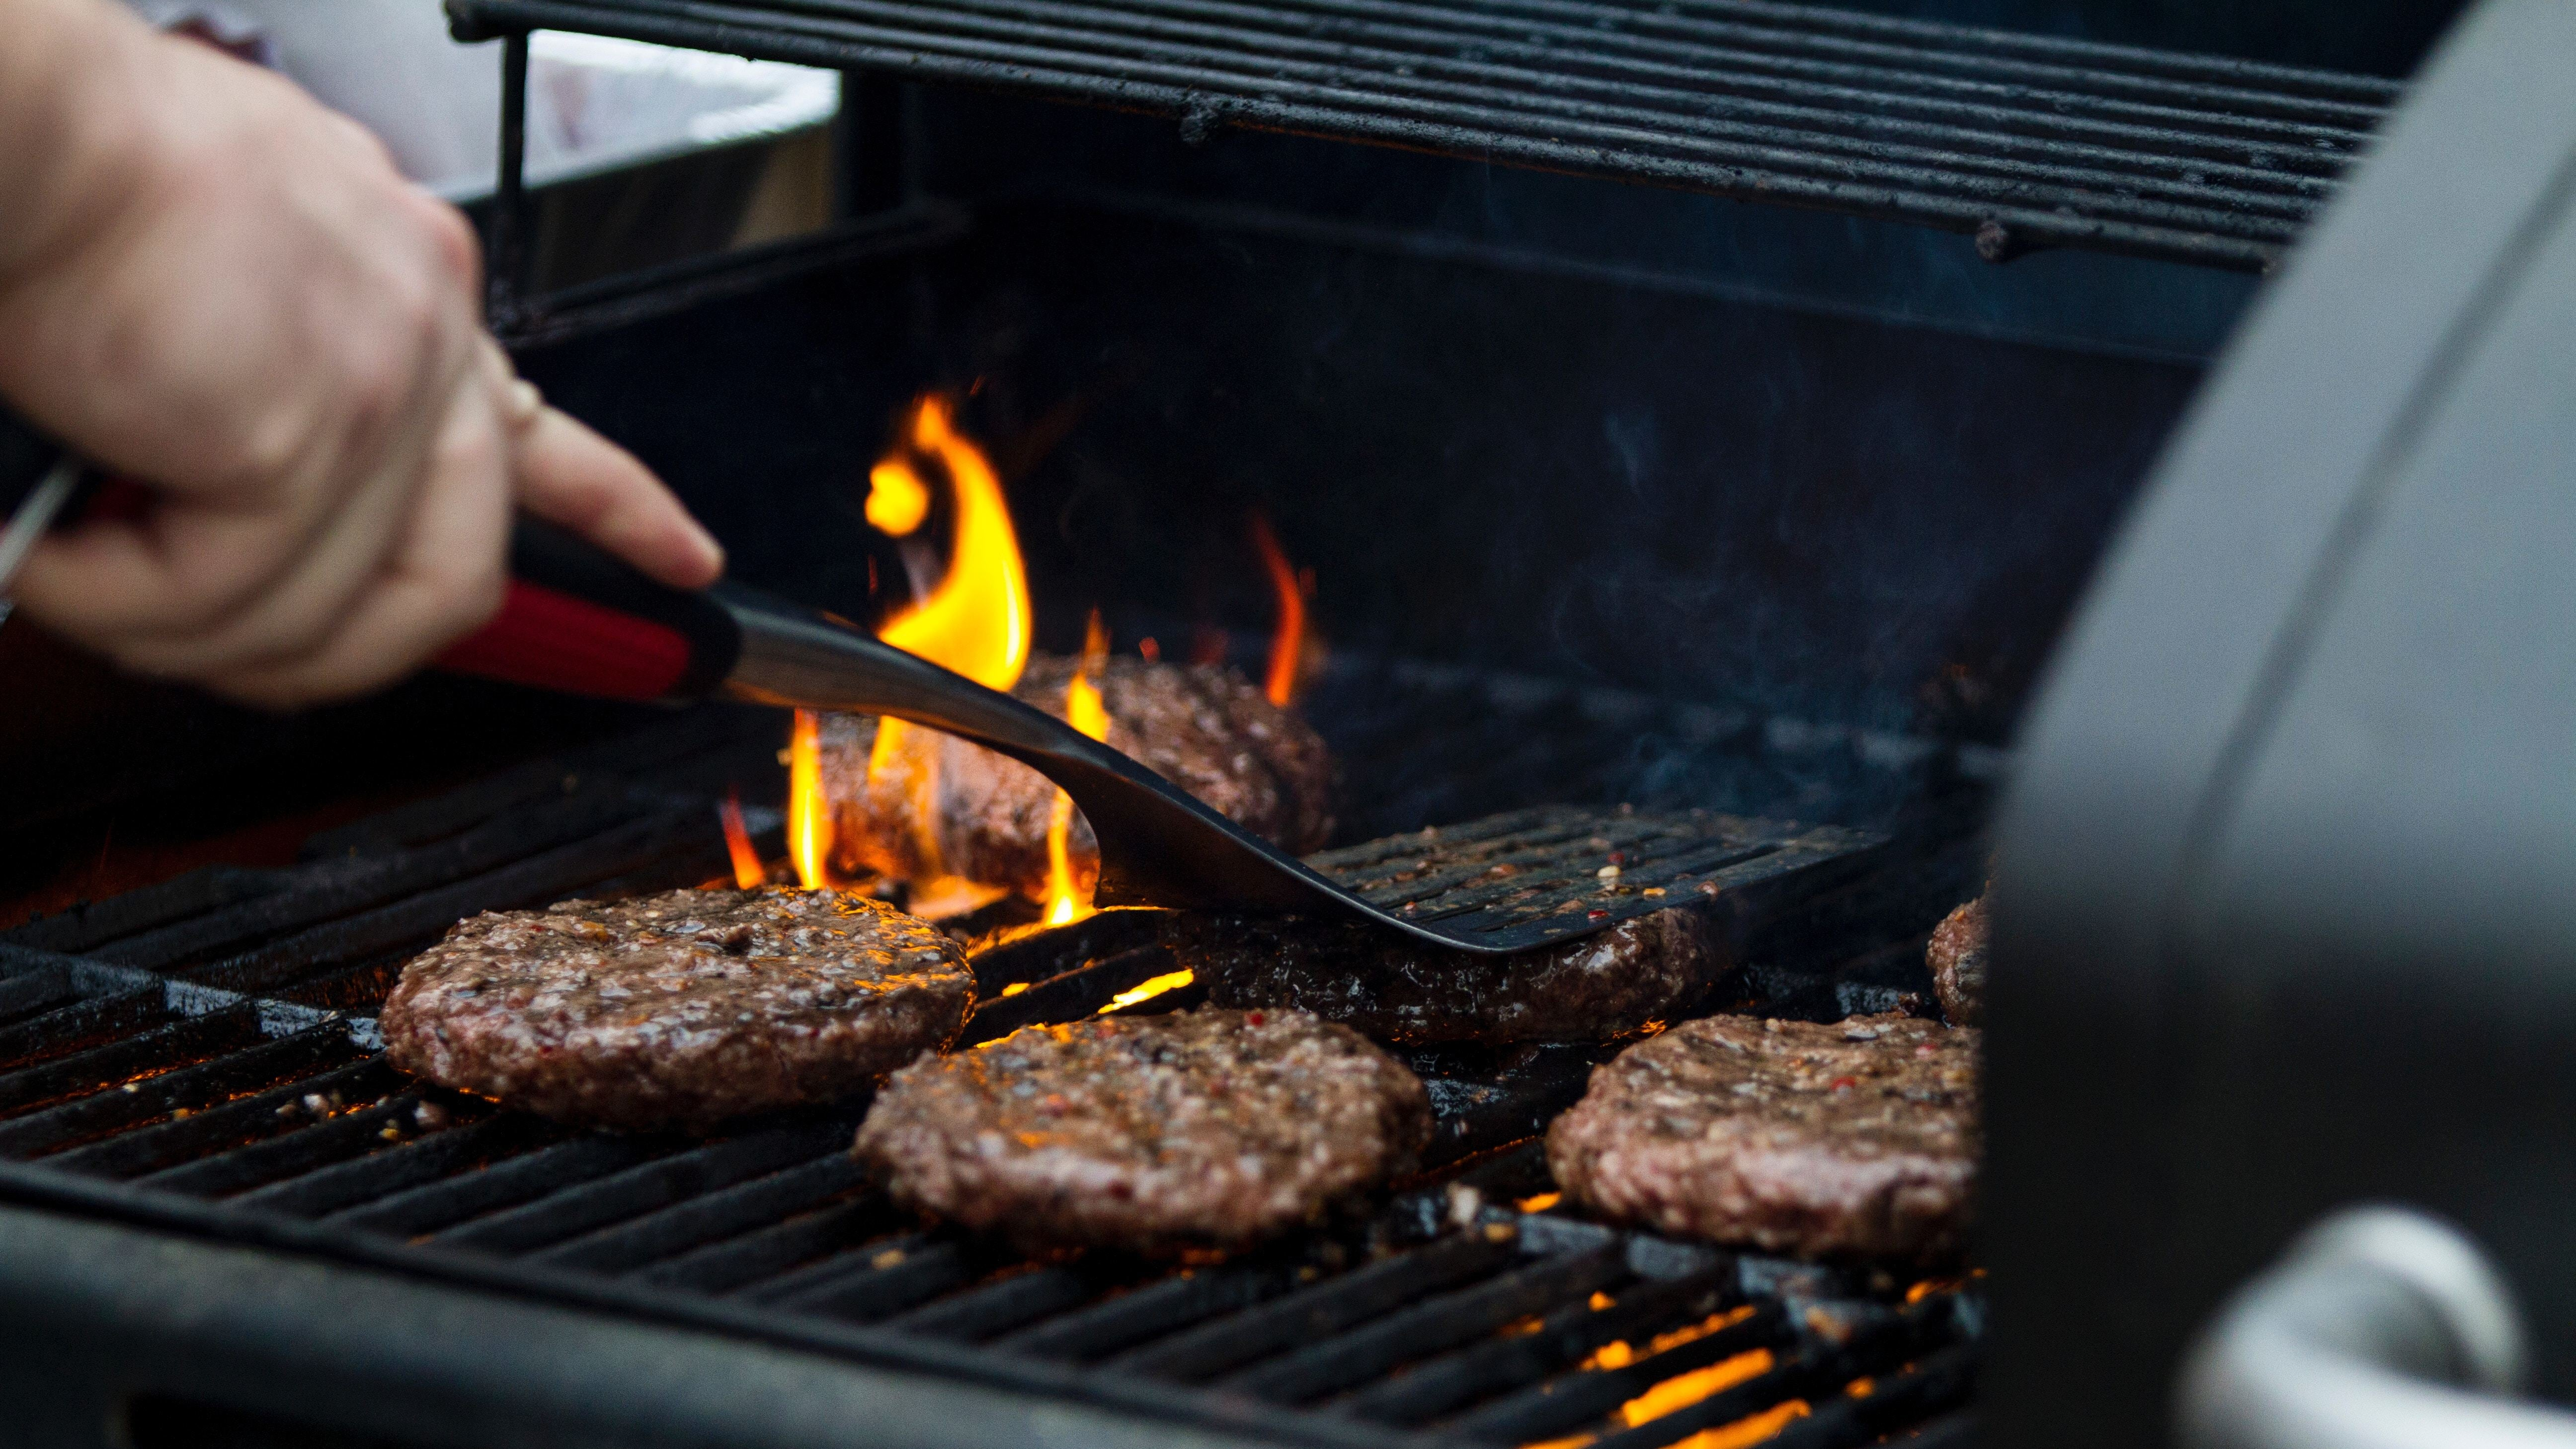 Don't Use A Bristle Brush To Clean Your Grill